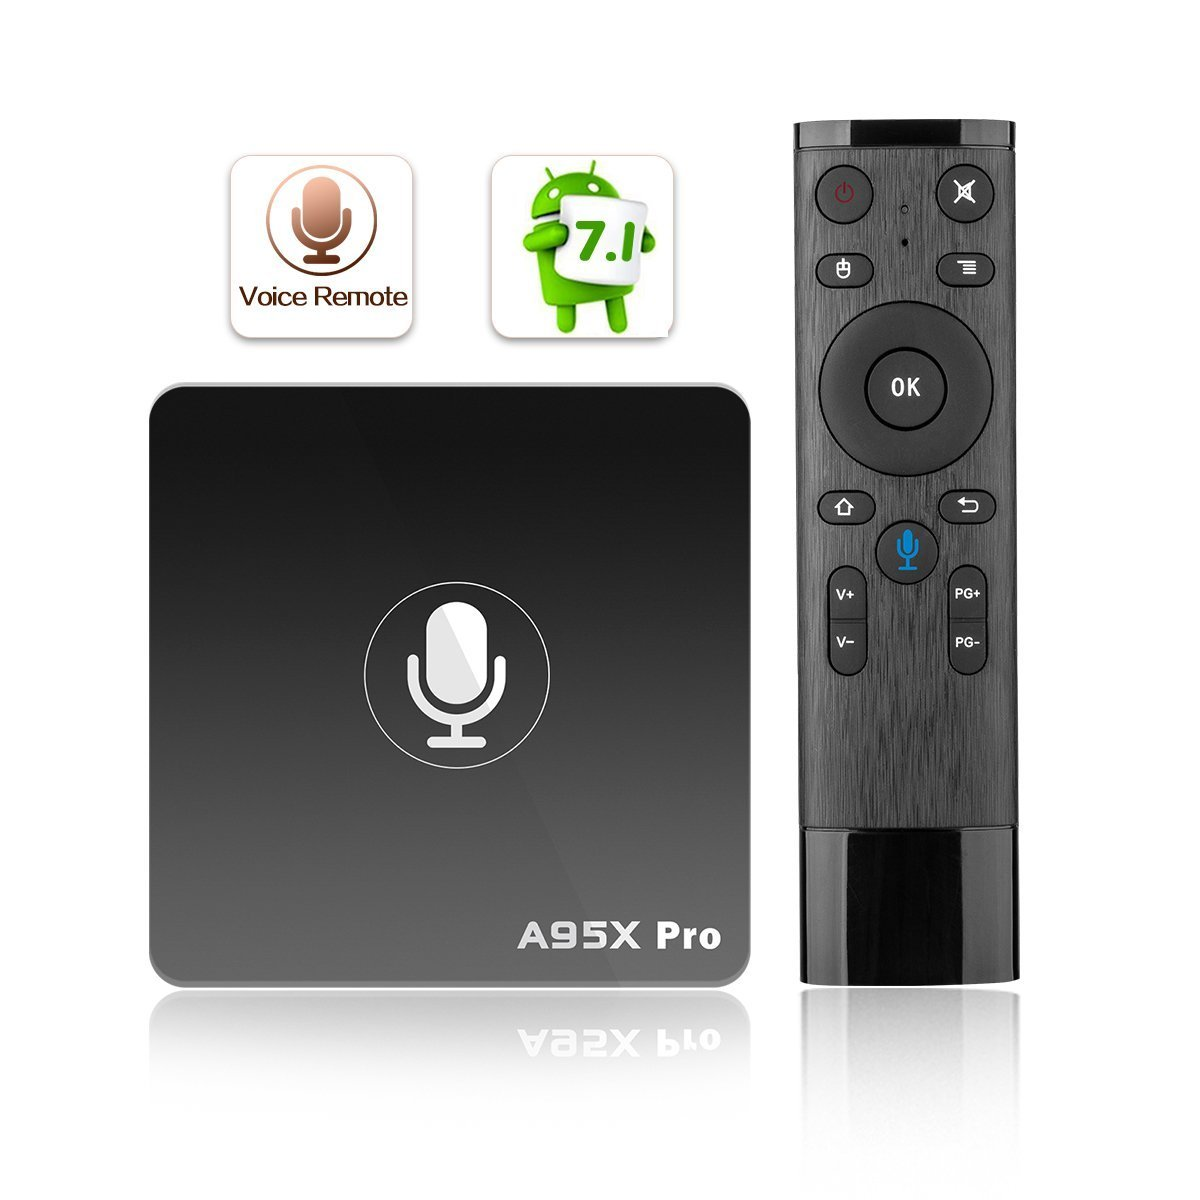 A95X PRO 2018 Media Player Google Android 7.1 TV Box Amlogic Quad-core 2GB RAM 16GB ROM 4K UHD 3D Smart Set Top Box With Voice Remote 2.4Ghz WiFi by TOJOYBOX